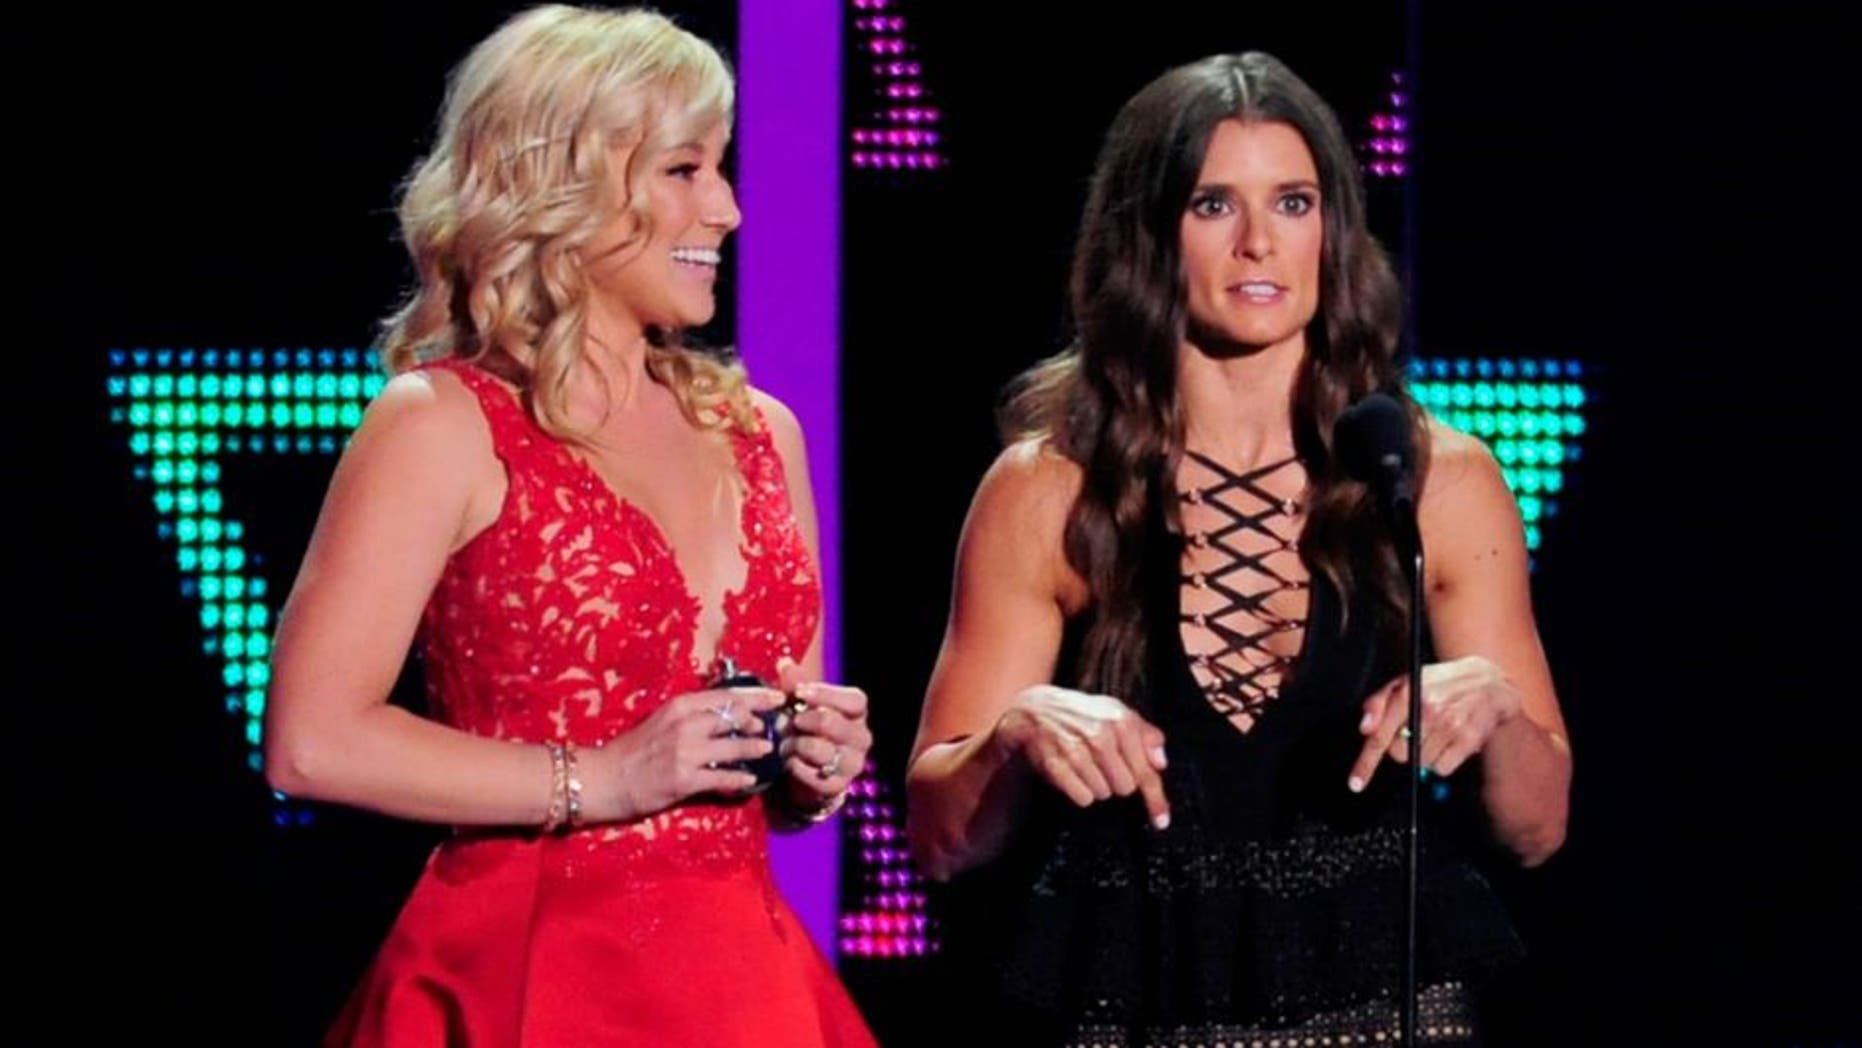 NASHVILLE, TN - JUNE 08: Musical artist Kellie Pickler and race car driver Danica Patrick onstage during the 2016 CMT Music awards at the Bridgestone Arena on June 8, 2016 in Nashville, Tennessee. (Photo by FilmMagic/FilmMagic)